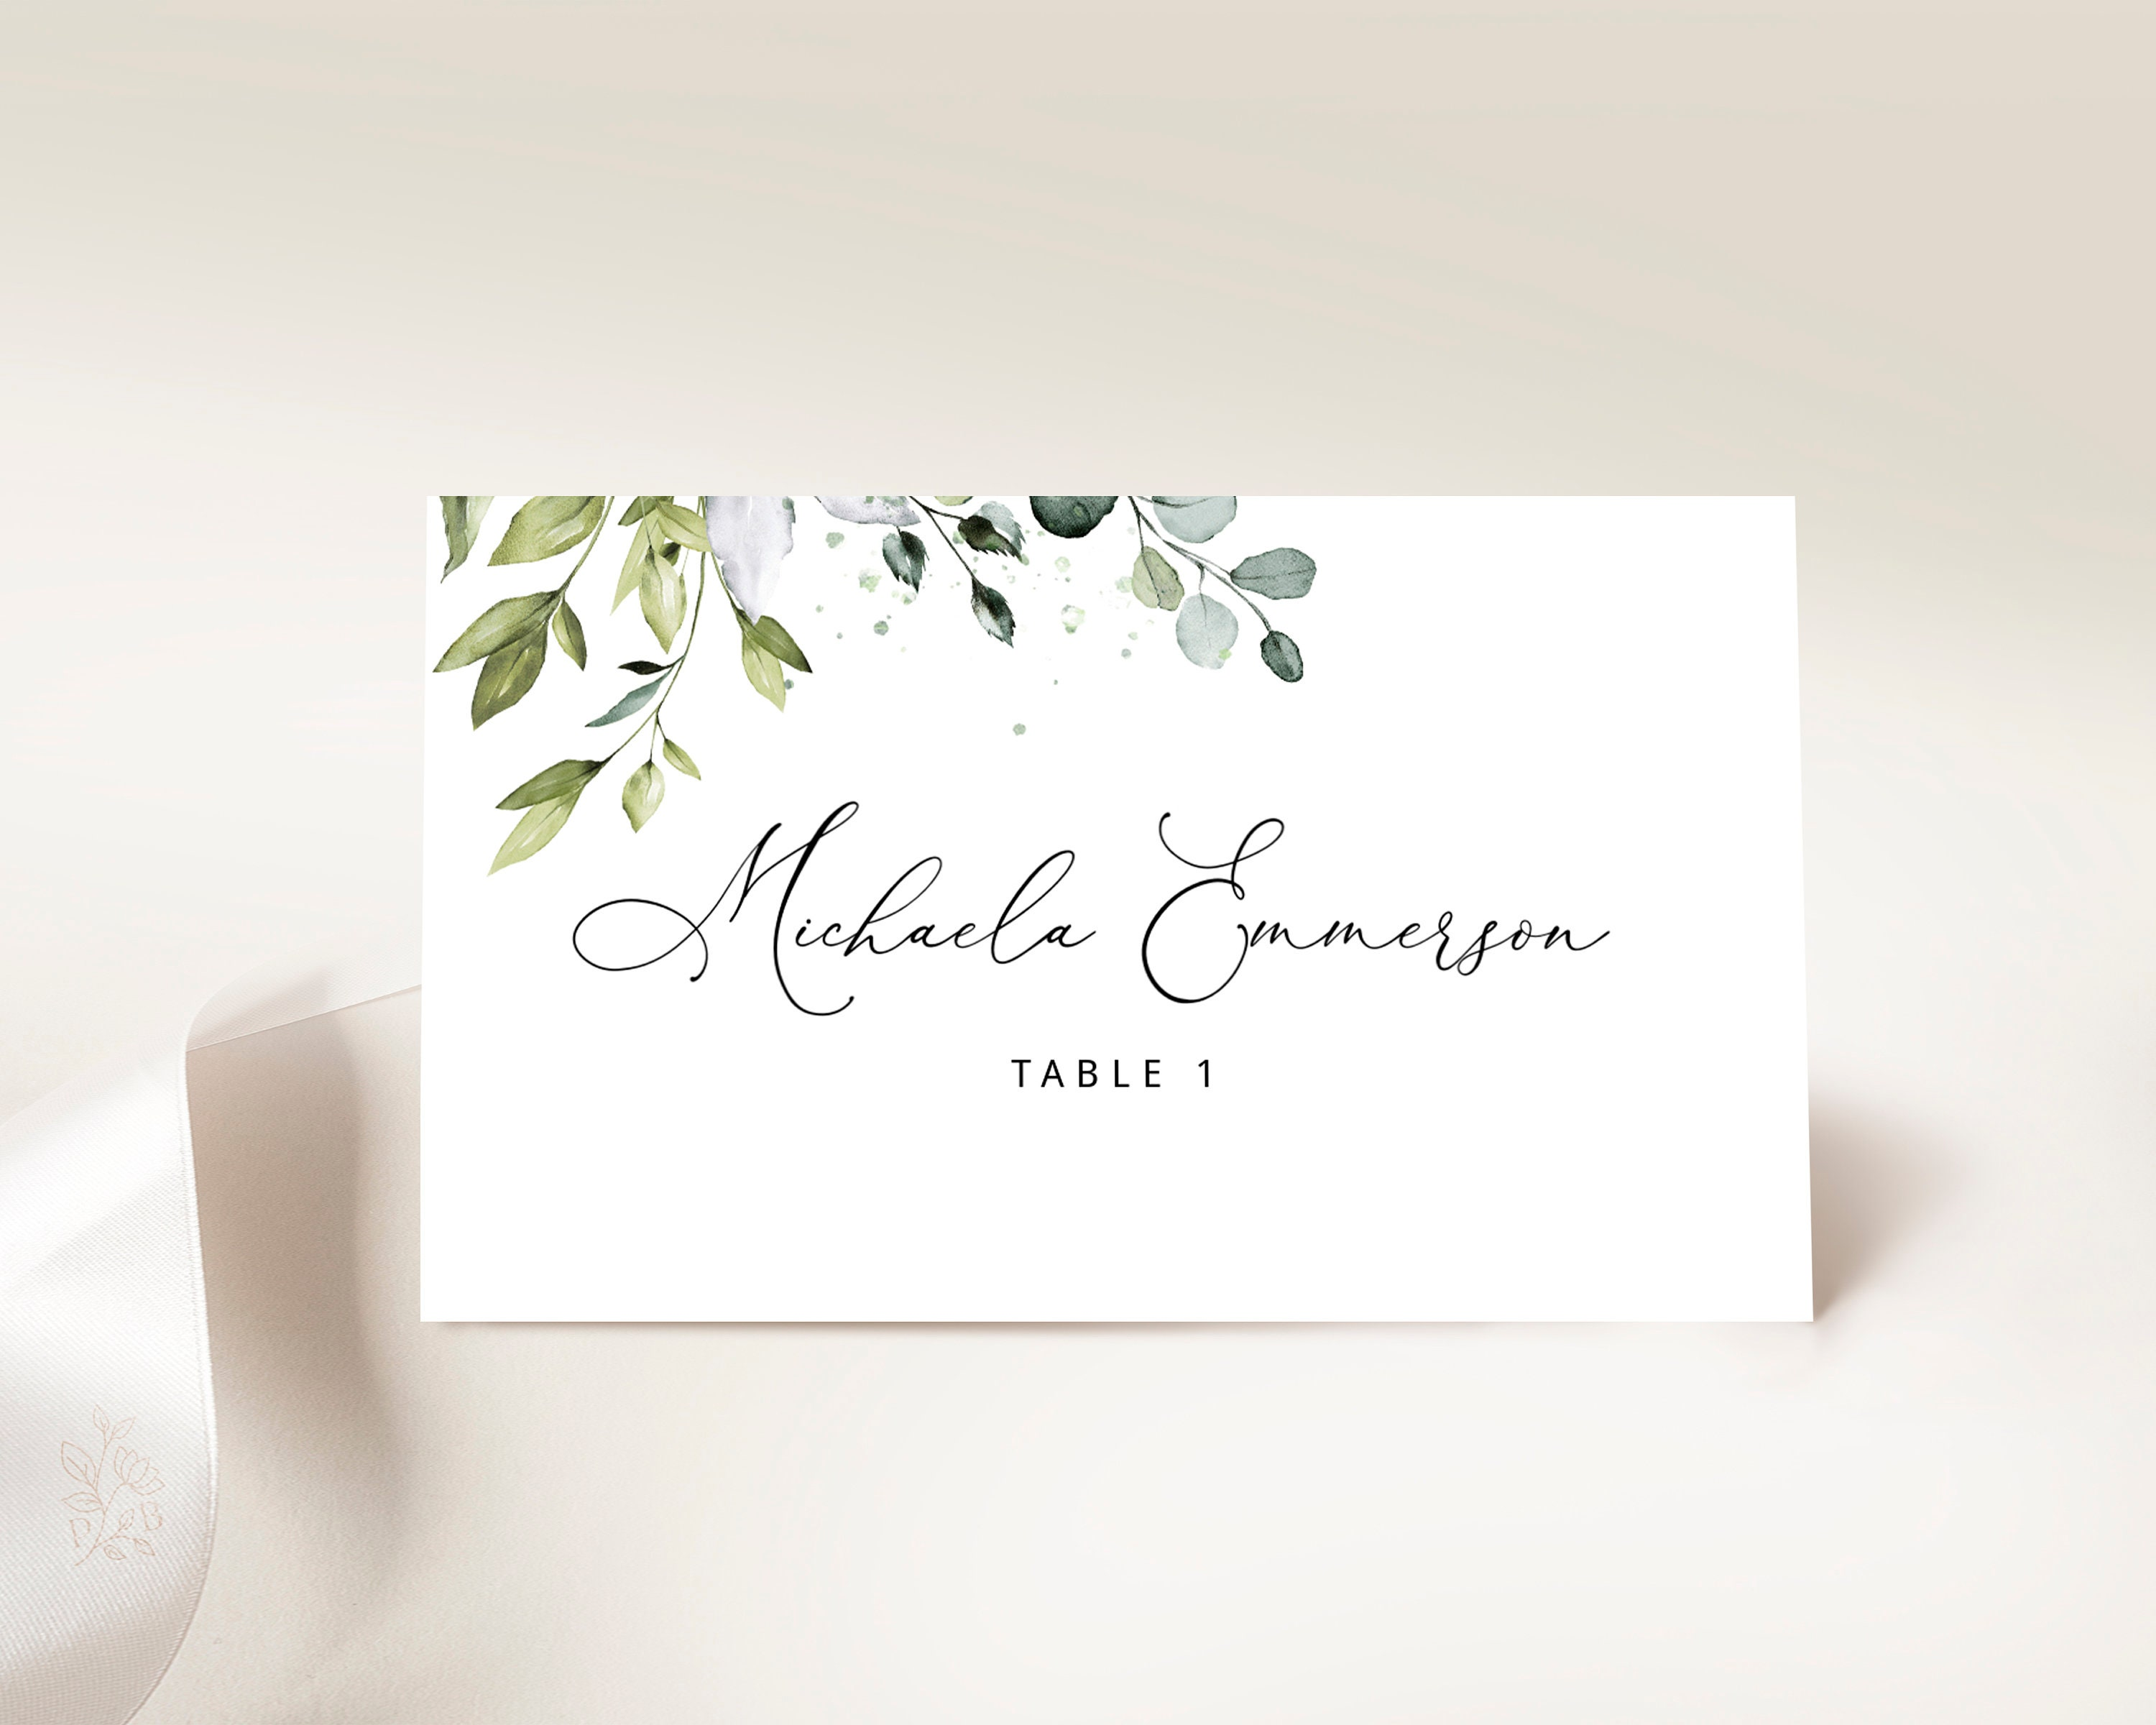 Editable Wedding Place Cards Template, Avery Wedding Name Cards, Greenery,  Instant Download, Eucalyptus, Printable Place Cards Rustic Boho Throughout Christmas Table Place Cards Template